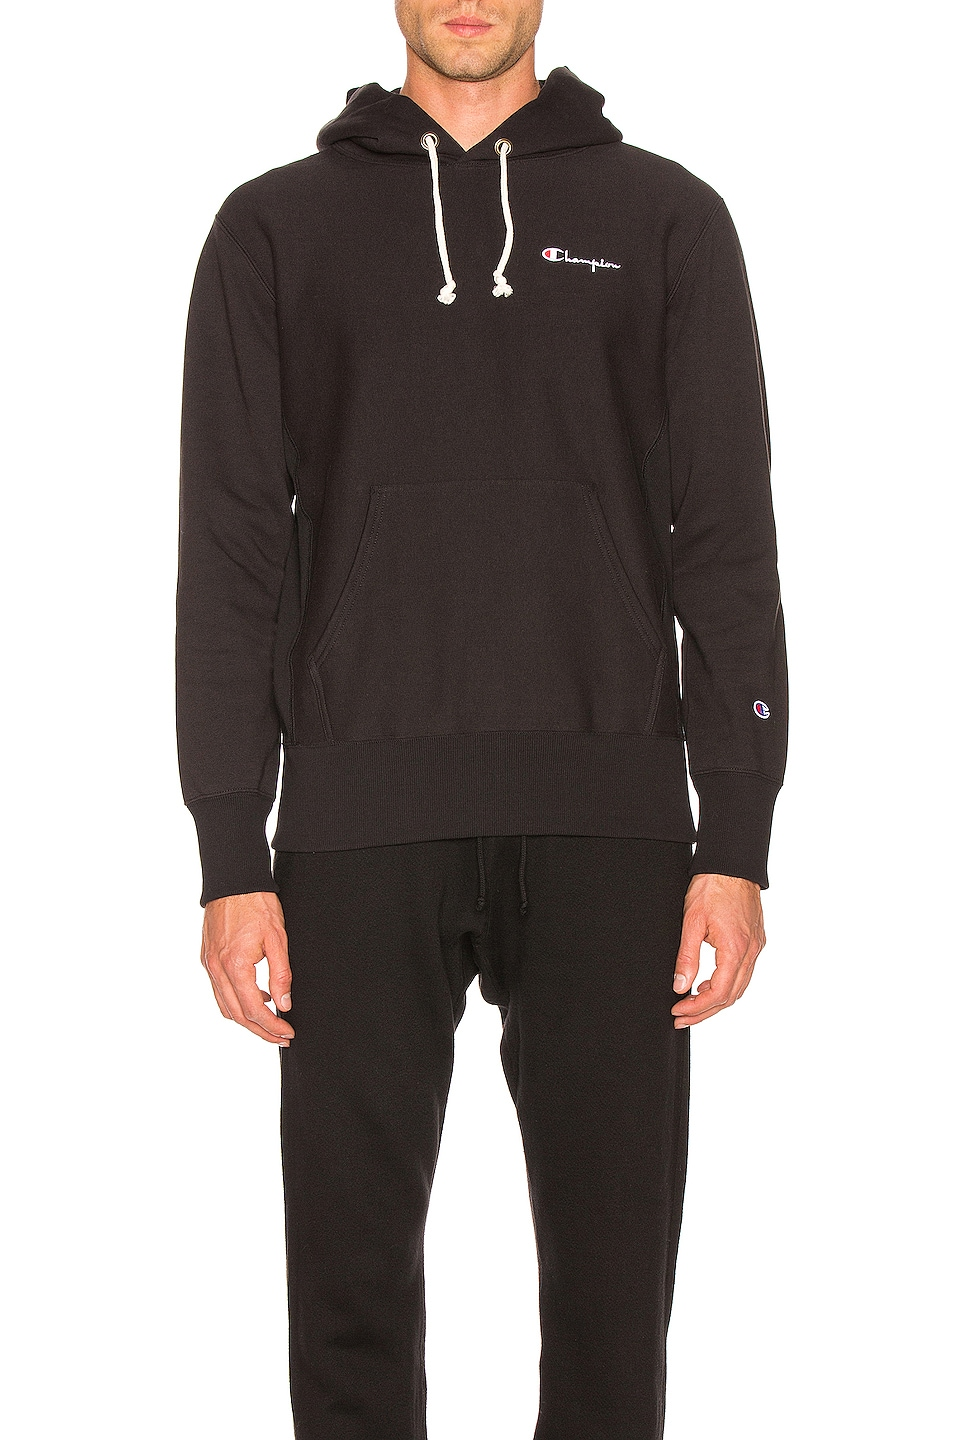 Image 1 of Champion Reverse Weave Champion Hooded Sweatshirt in Black